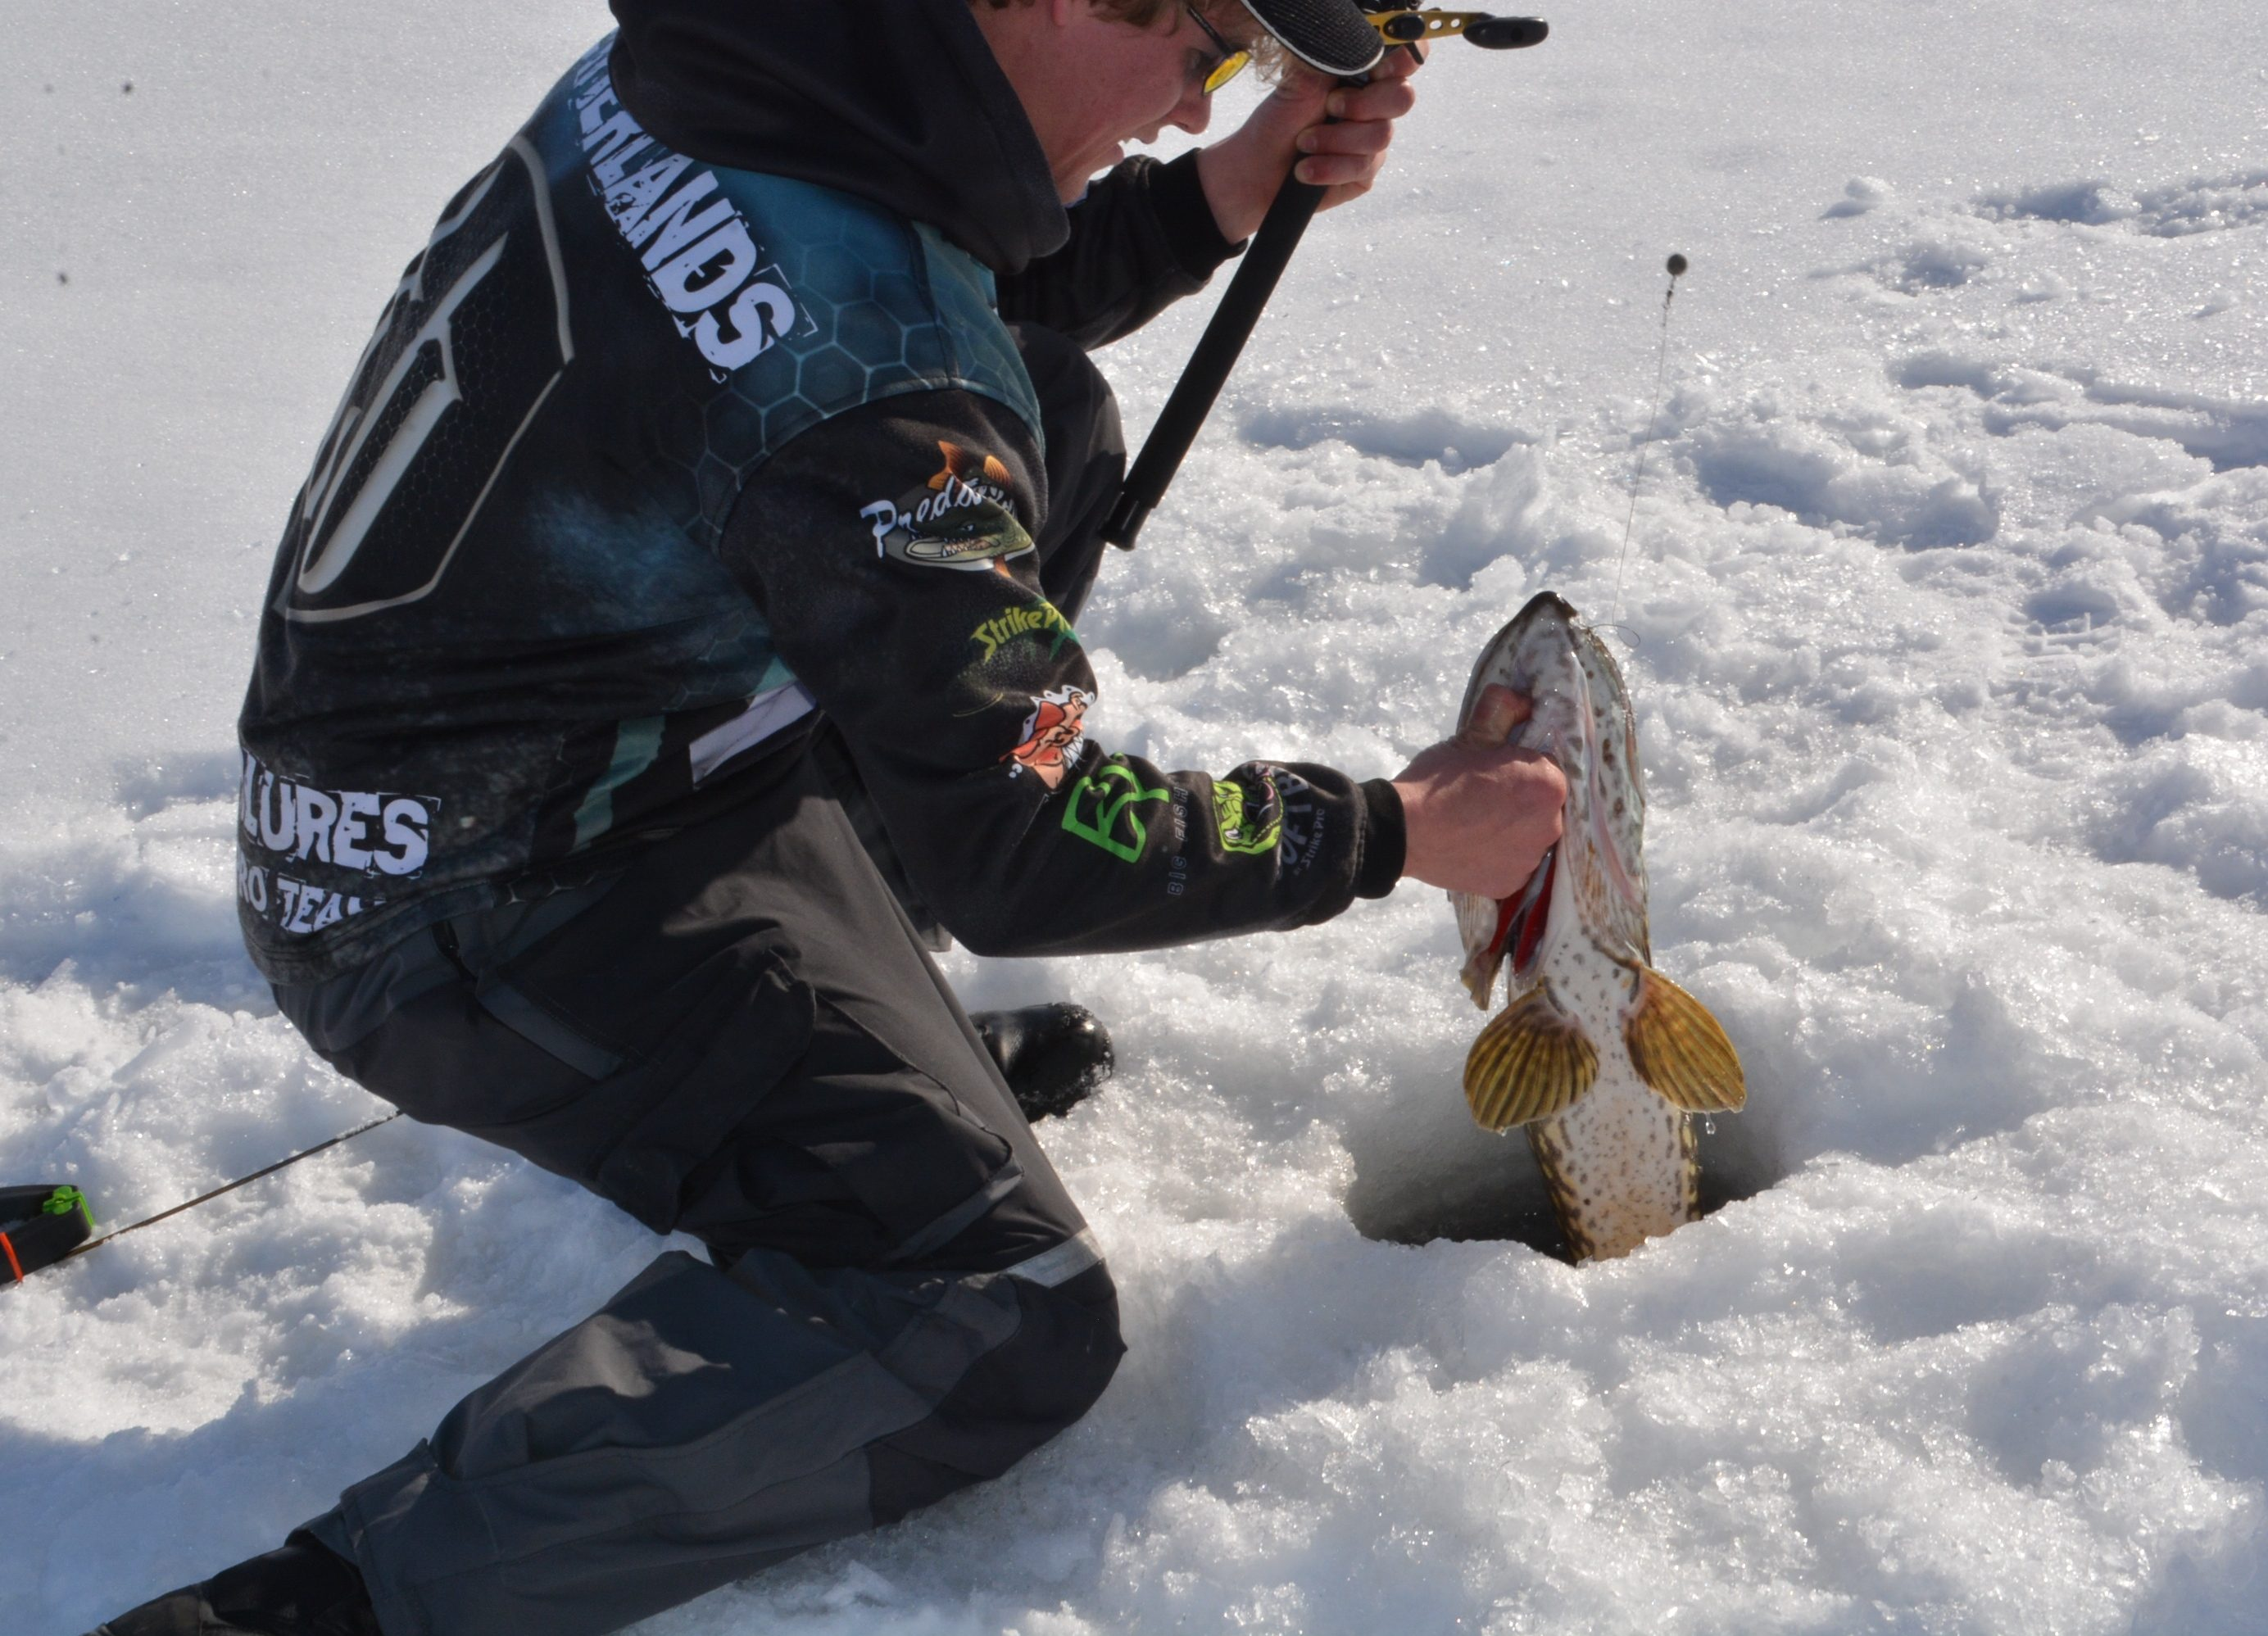 Ice fishing with Daniel from Netherlands